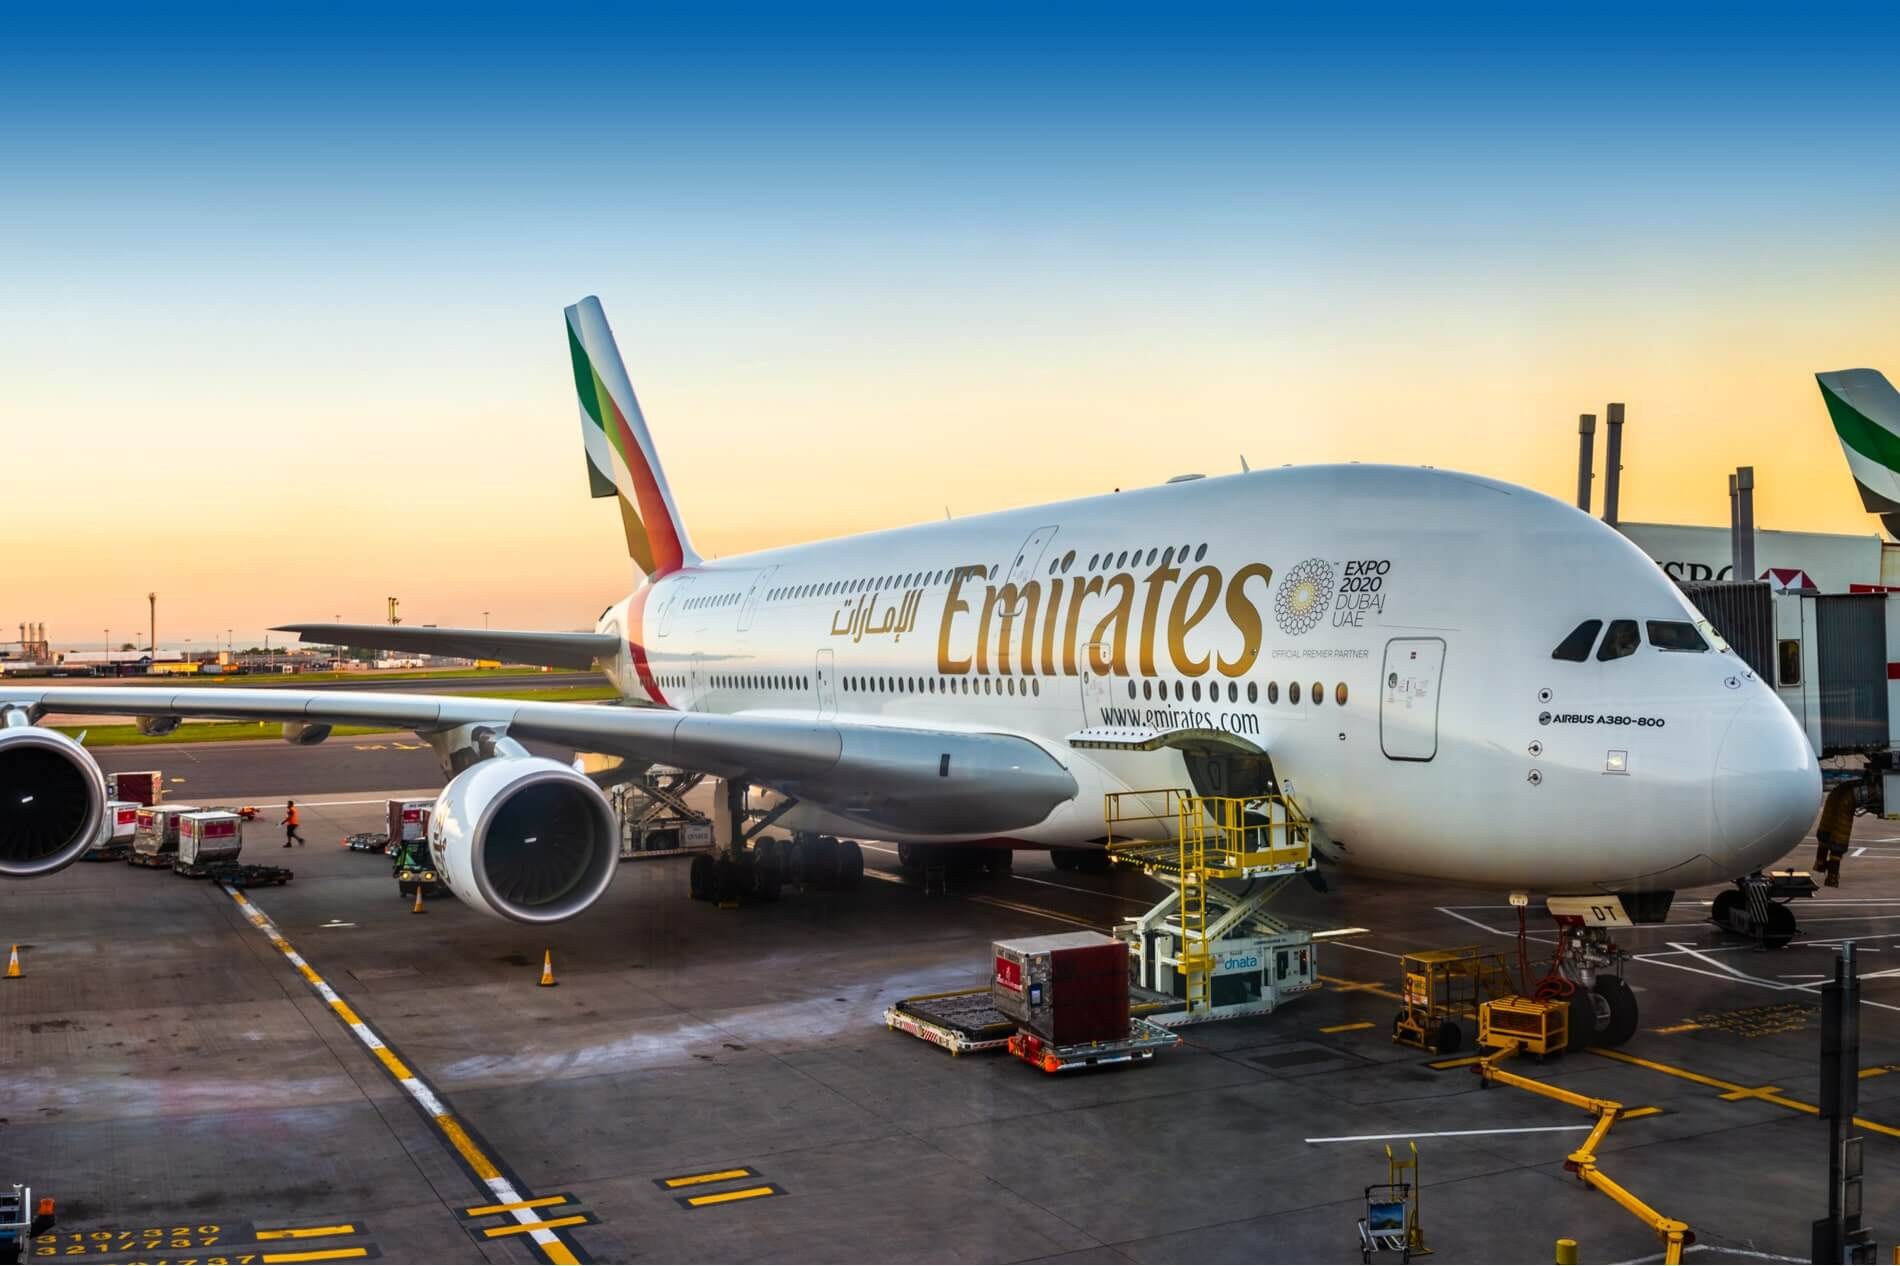 Emirates Airbus A380 at London Heathrow Airport LHR parking gate